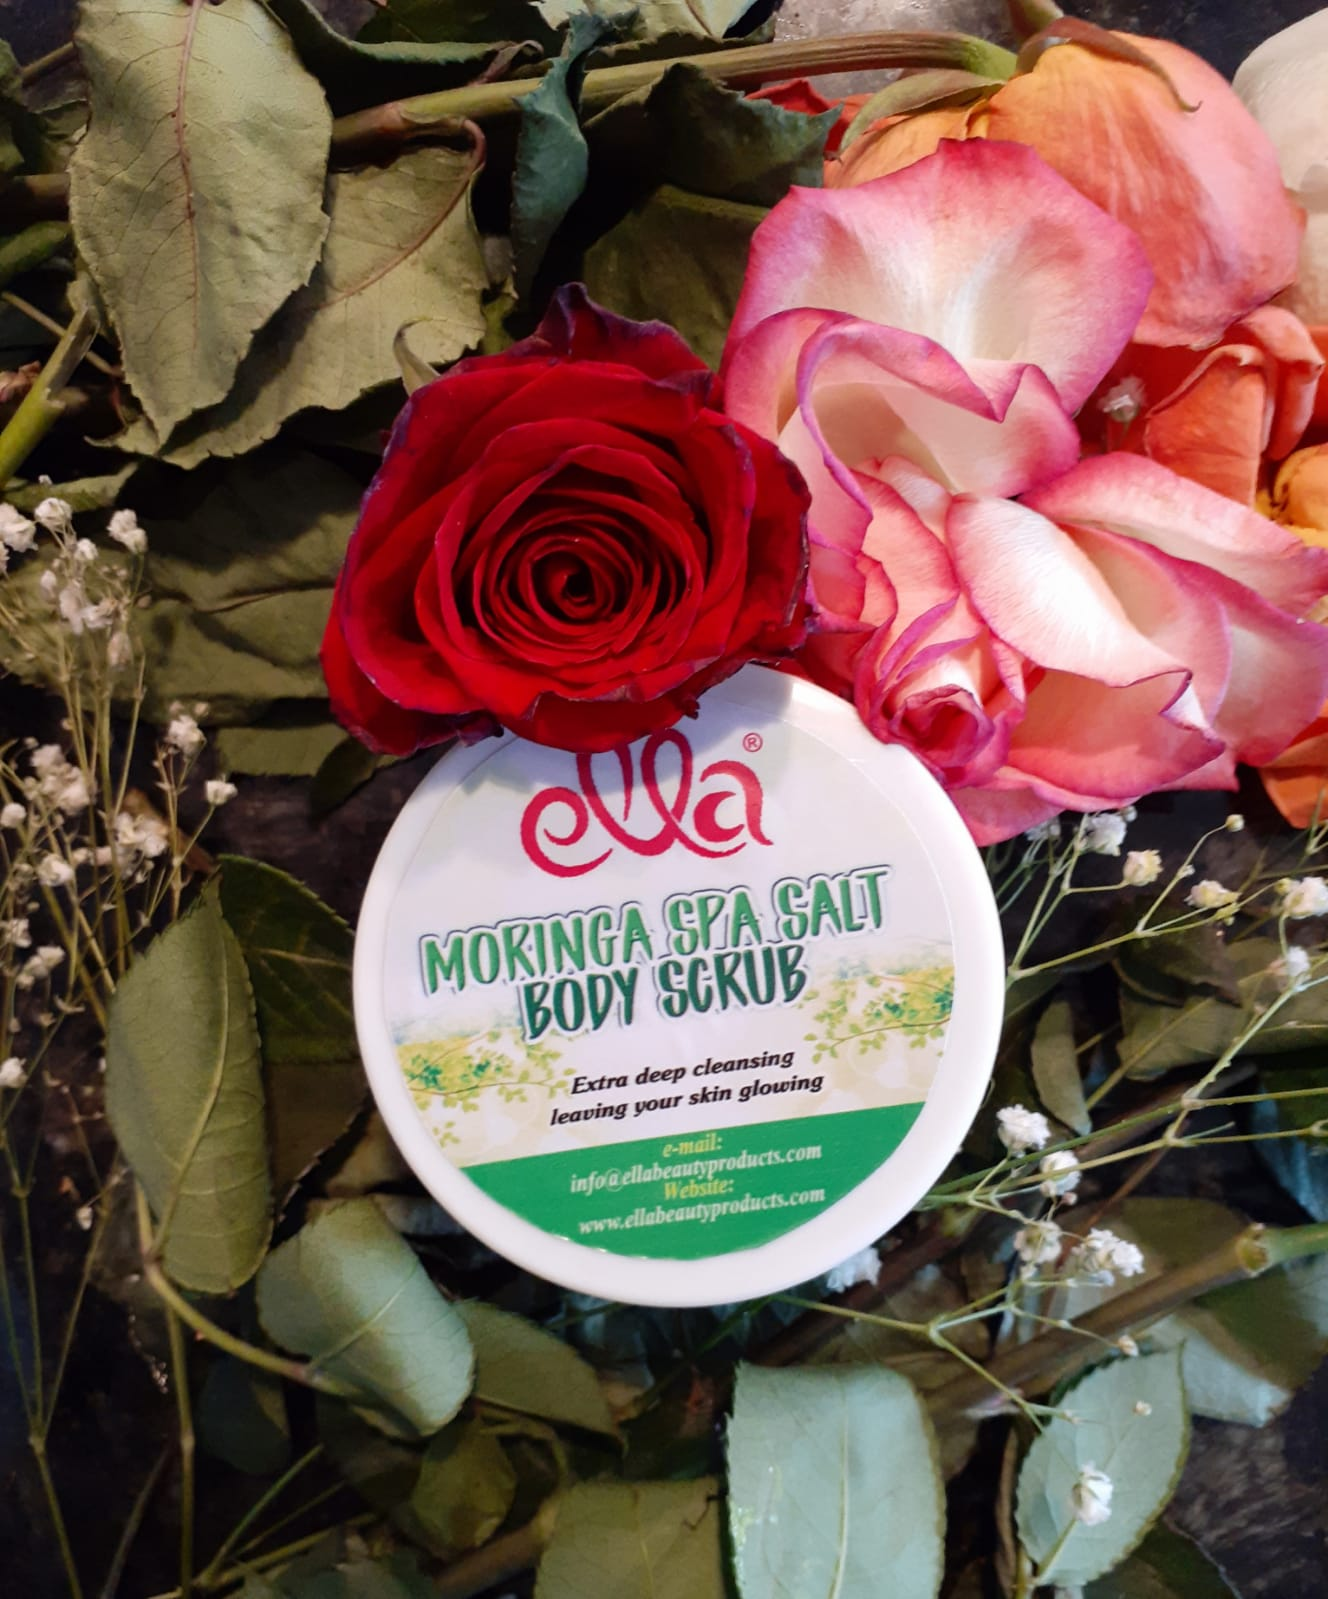 Ella Organic Beauty Products - Moringa Spa Salt Body Scrub